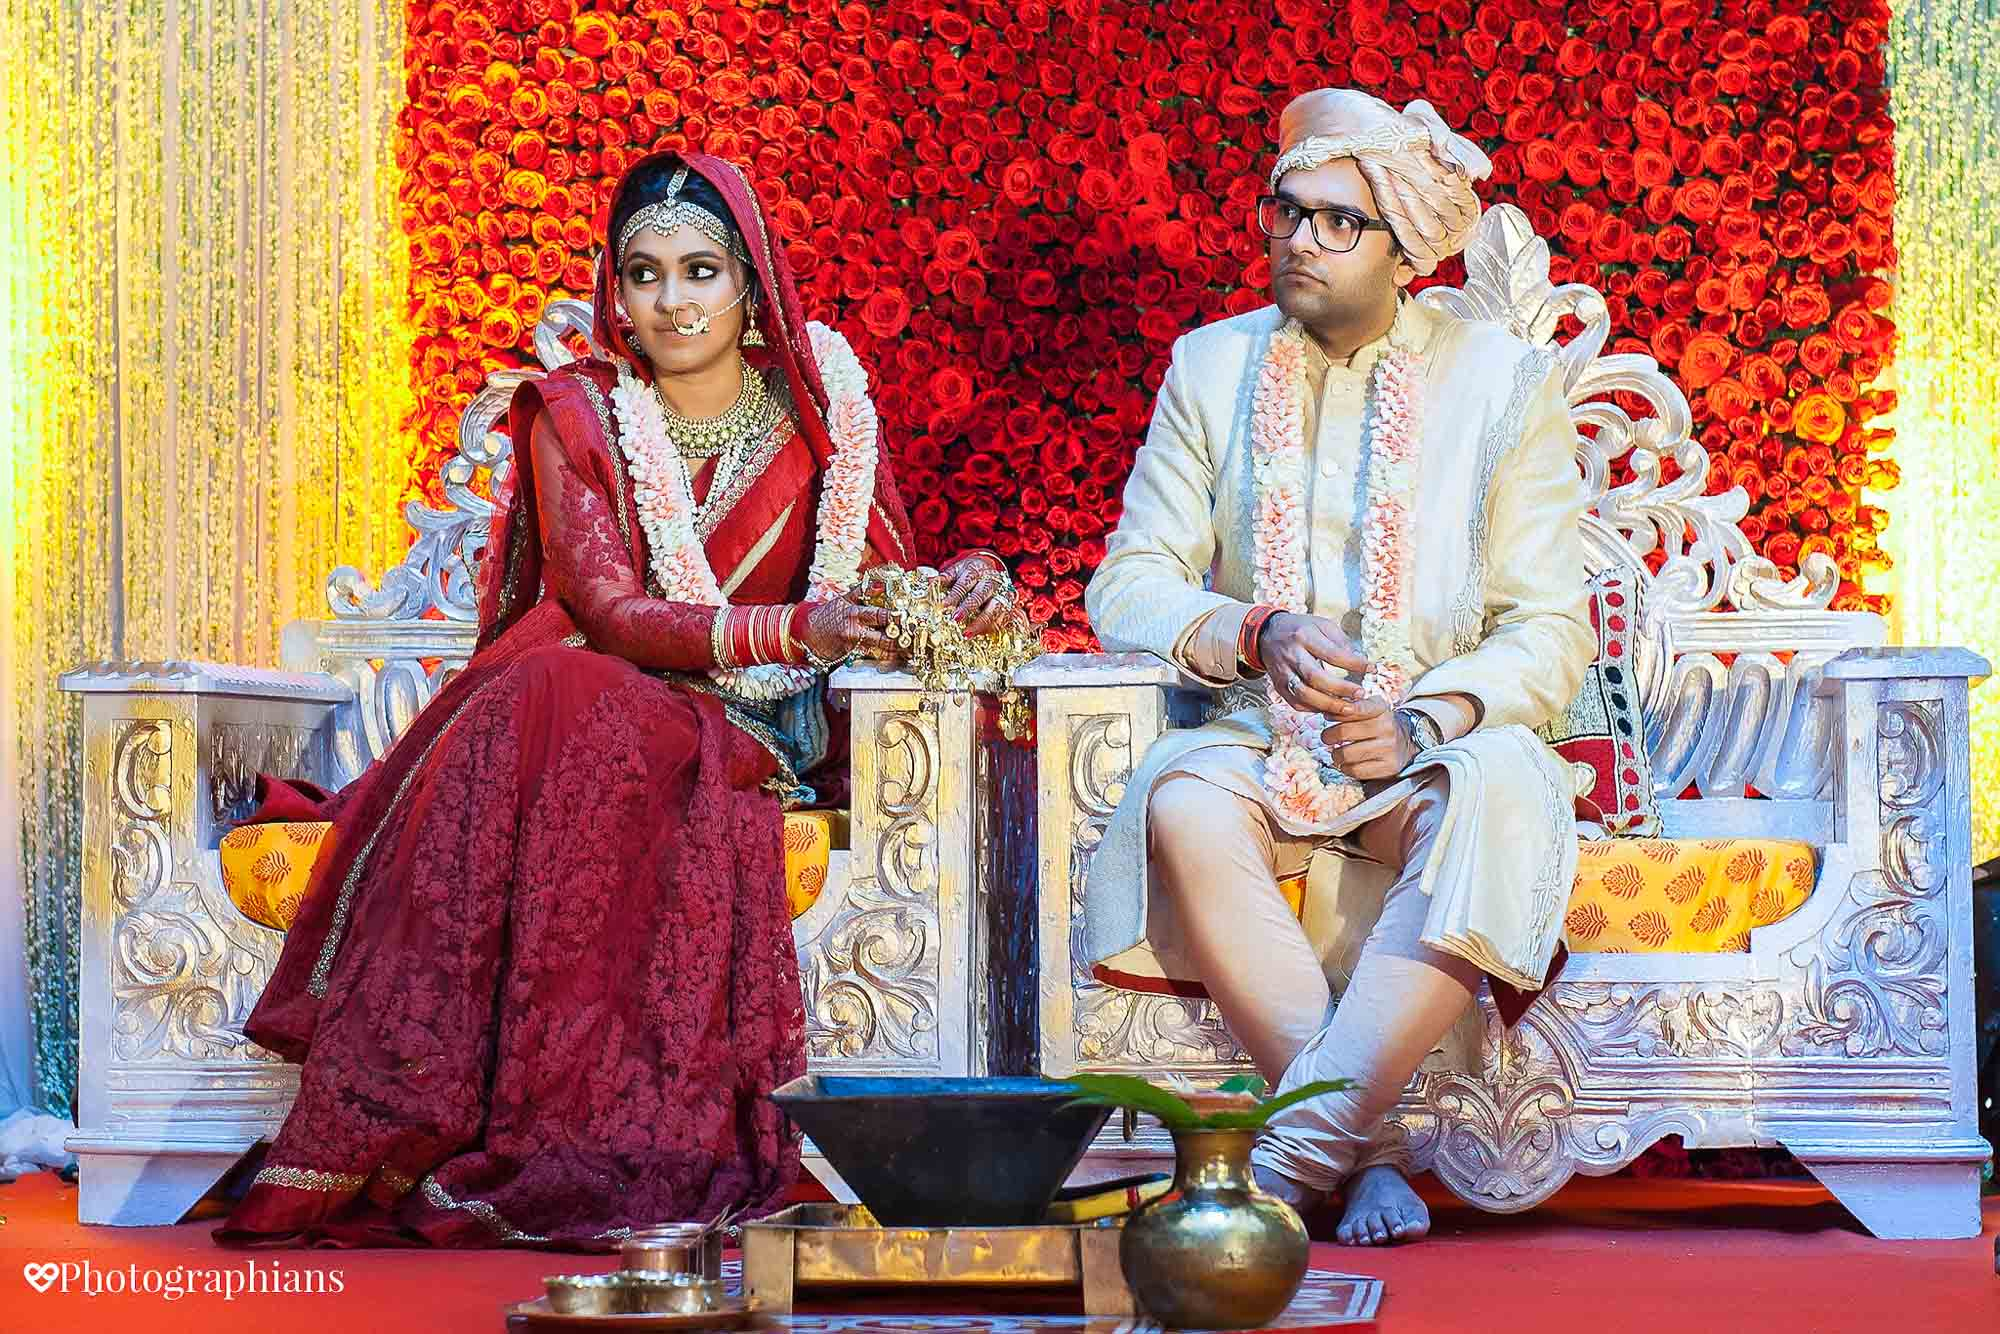 Punjabi_Marwari_Wedding_Kolkata_Photographians_-VIDHI-215